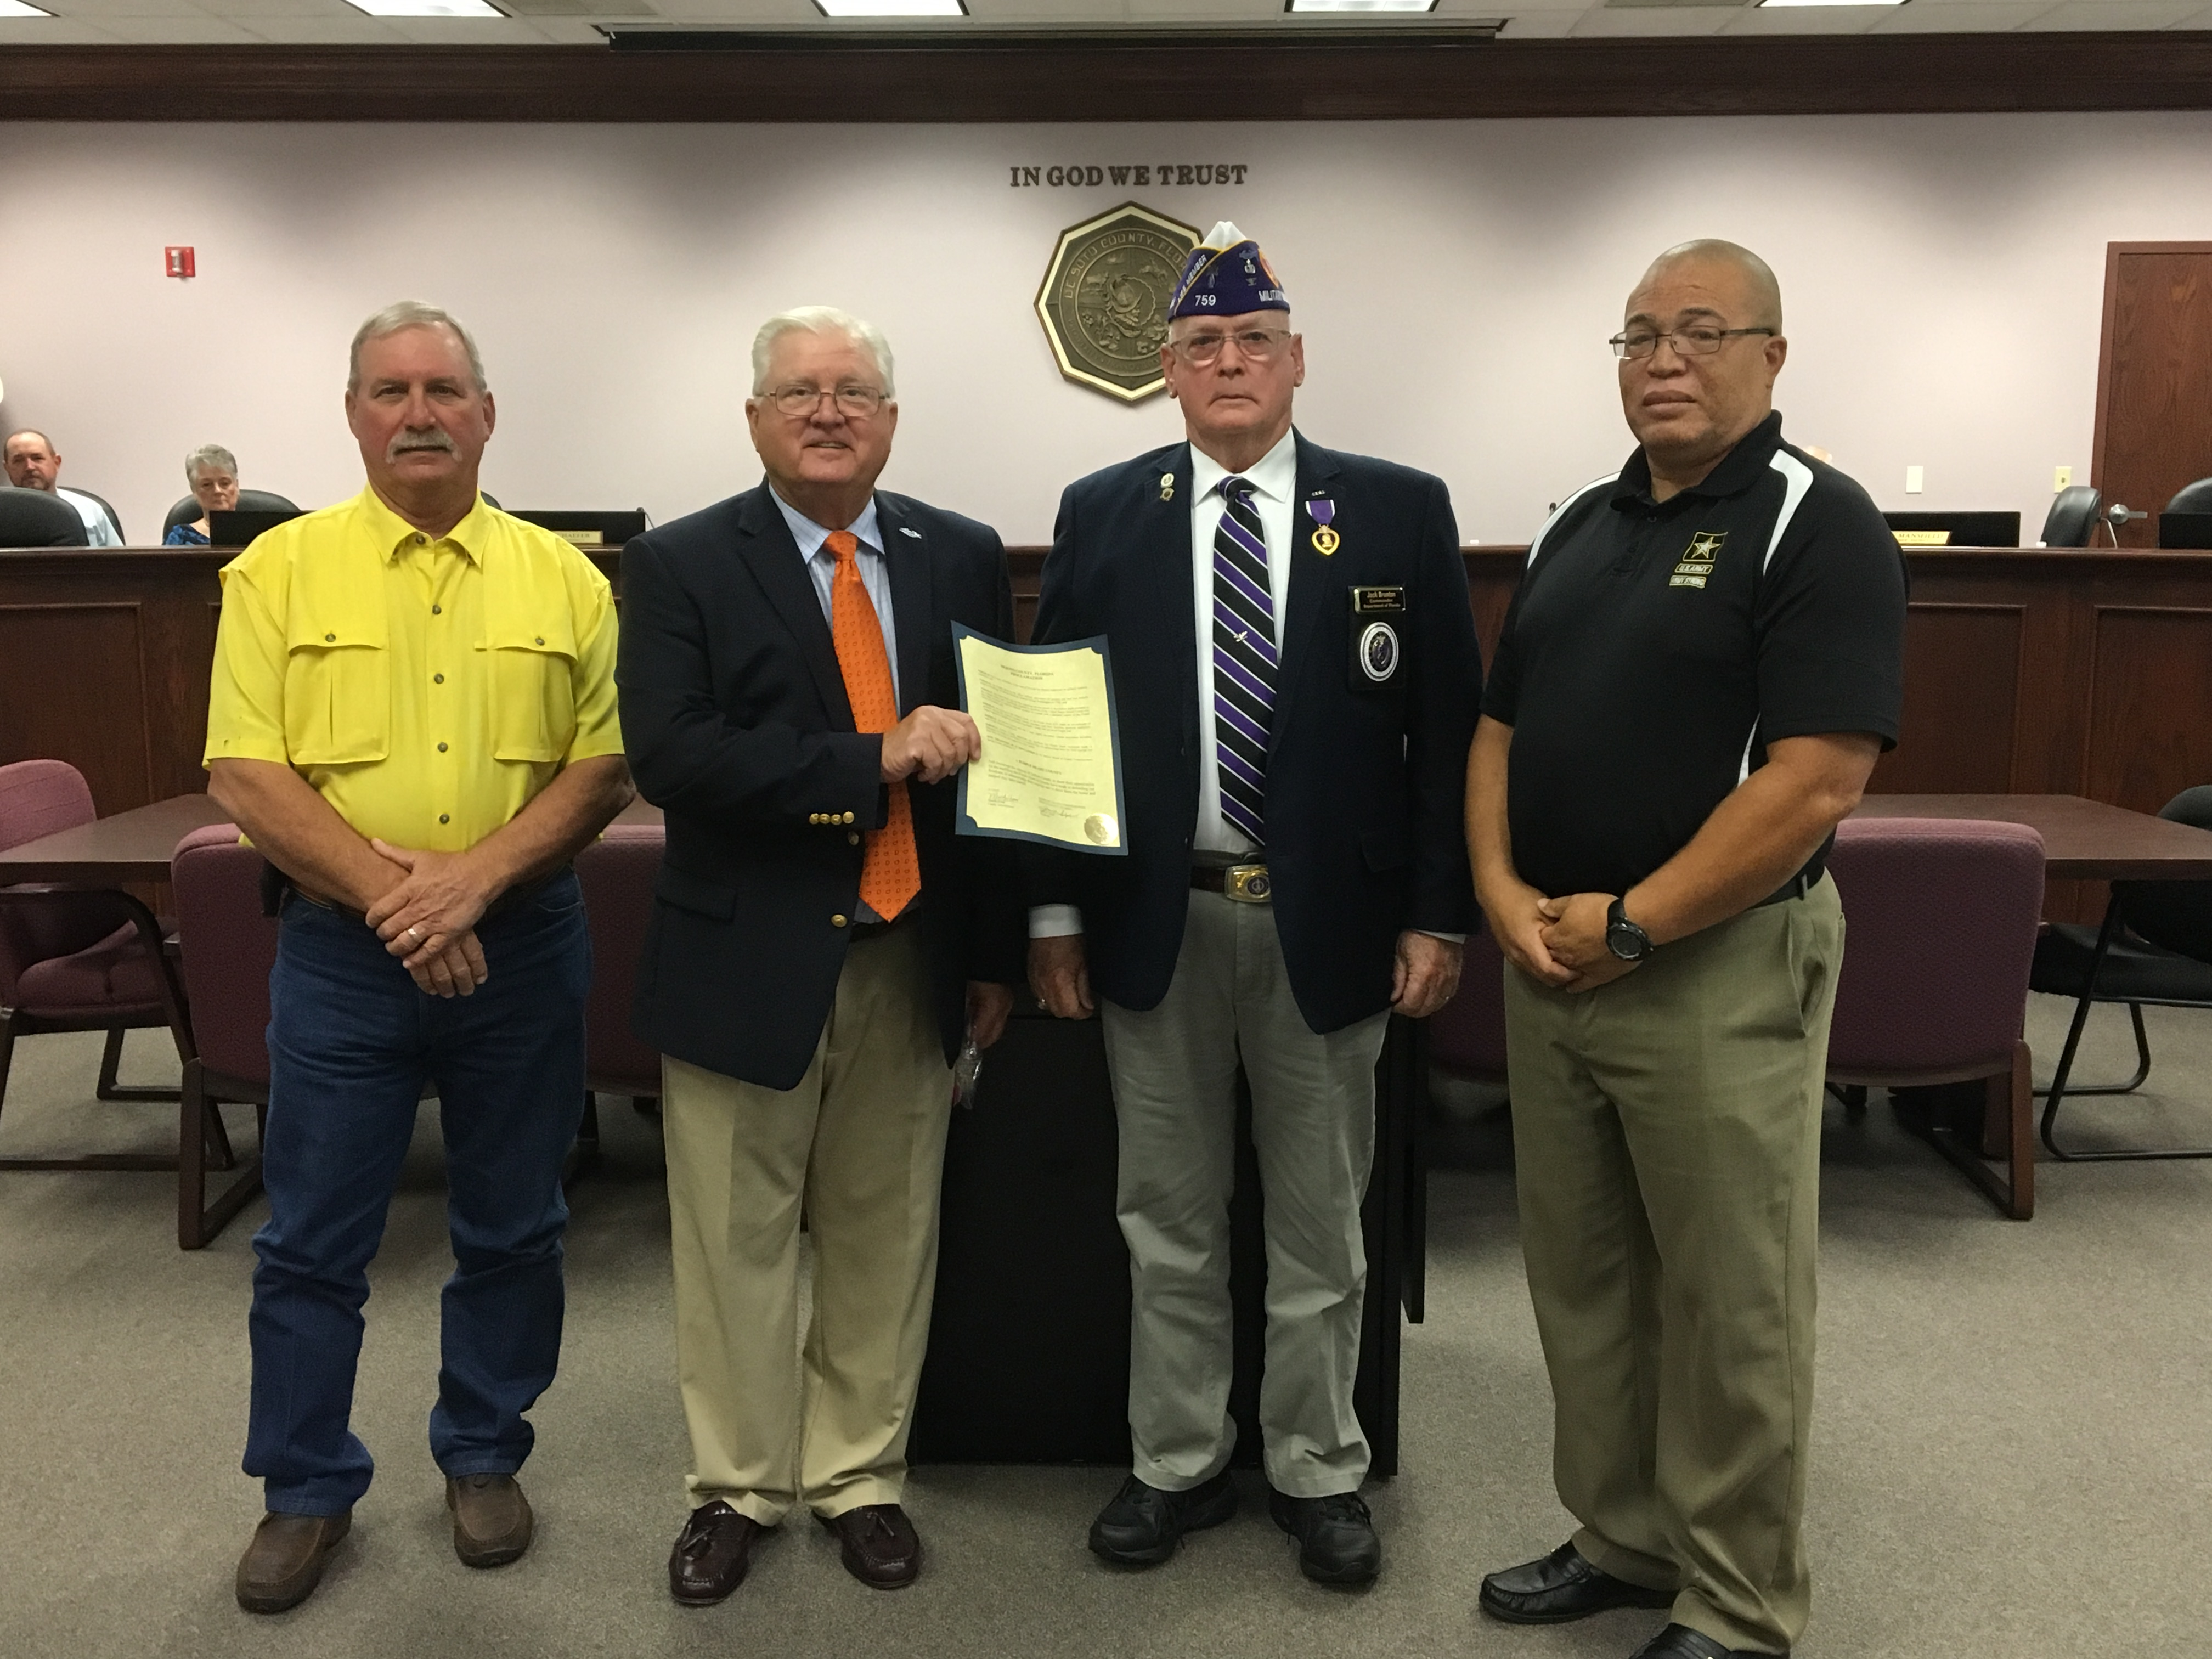 Commissioners Selph and Mansfield along with Veterans Service Officer Steve Rickard and Jack Brunton, Jr.